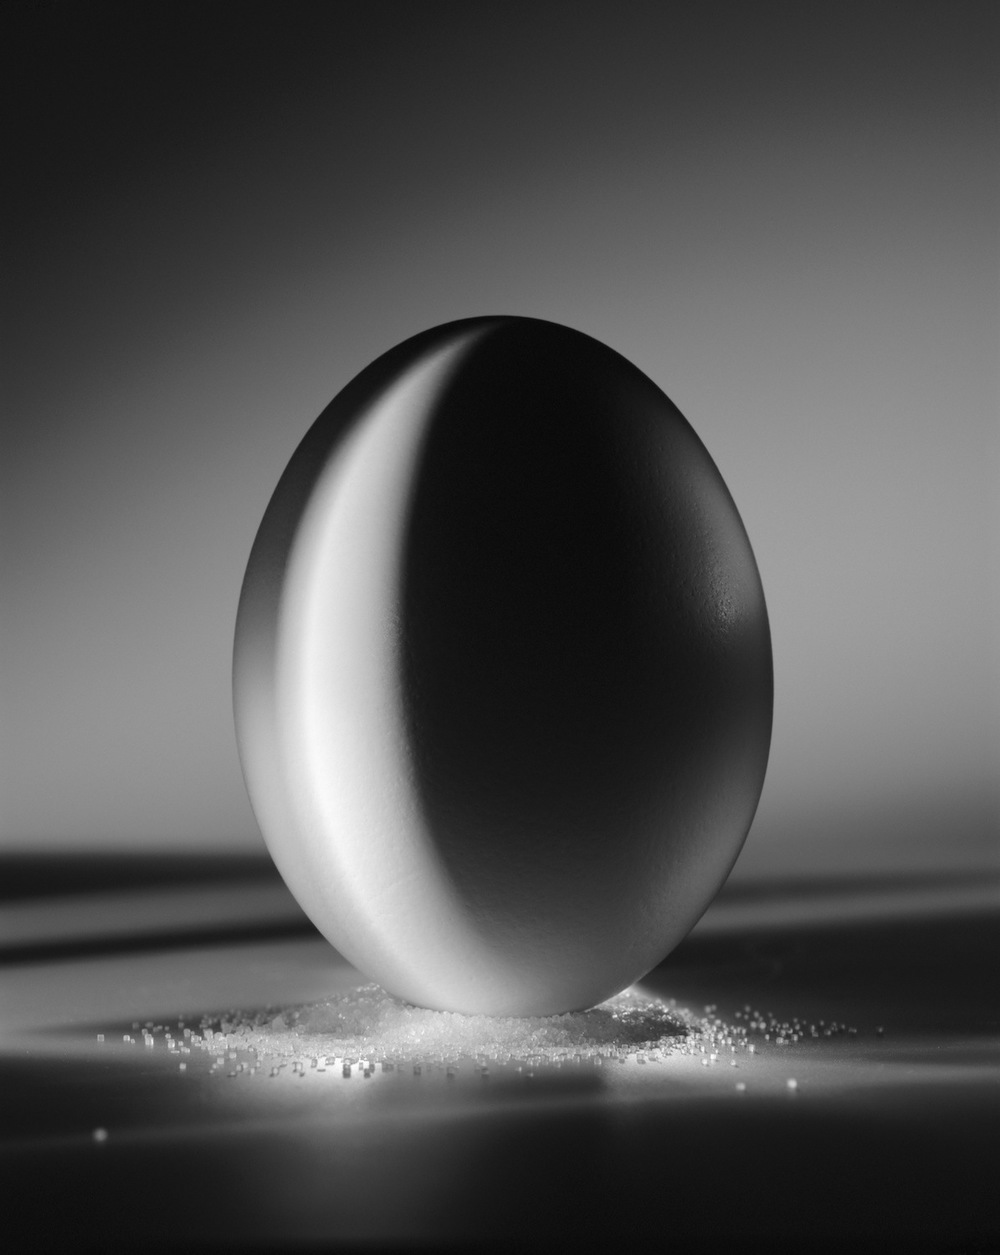 egg on salt jpeg.jpg